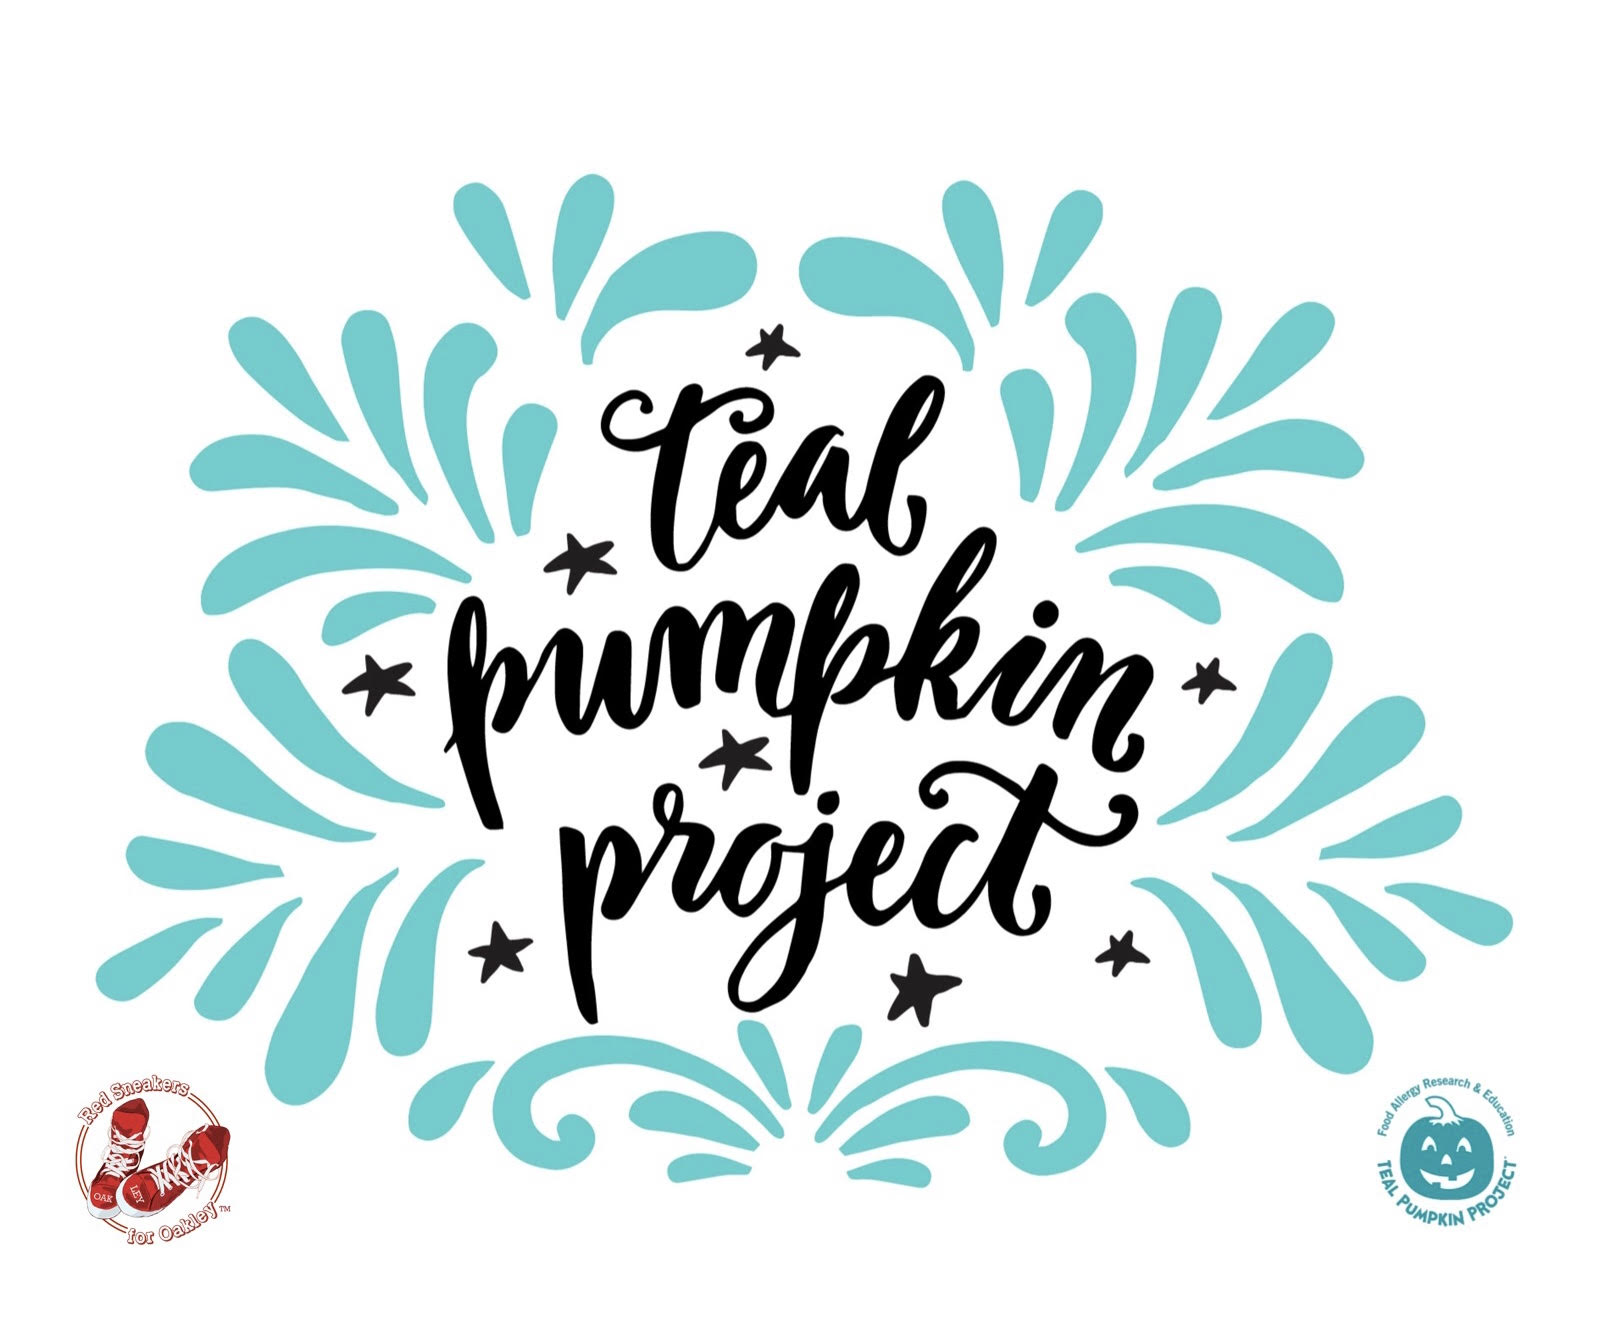 Leading Food Allergy Organizations Join in Support of the Teal Pumpkin Project - We're excited to team up with this organization to create a happier, safer Halloween for all.